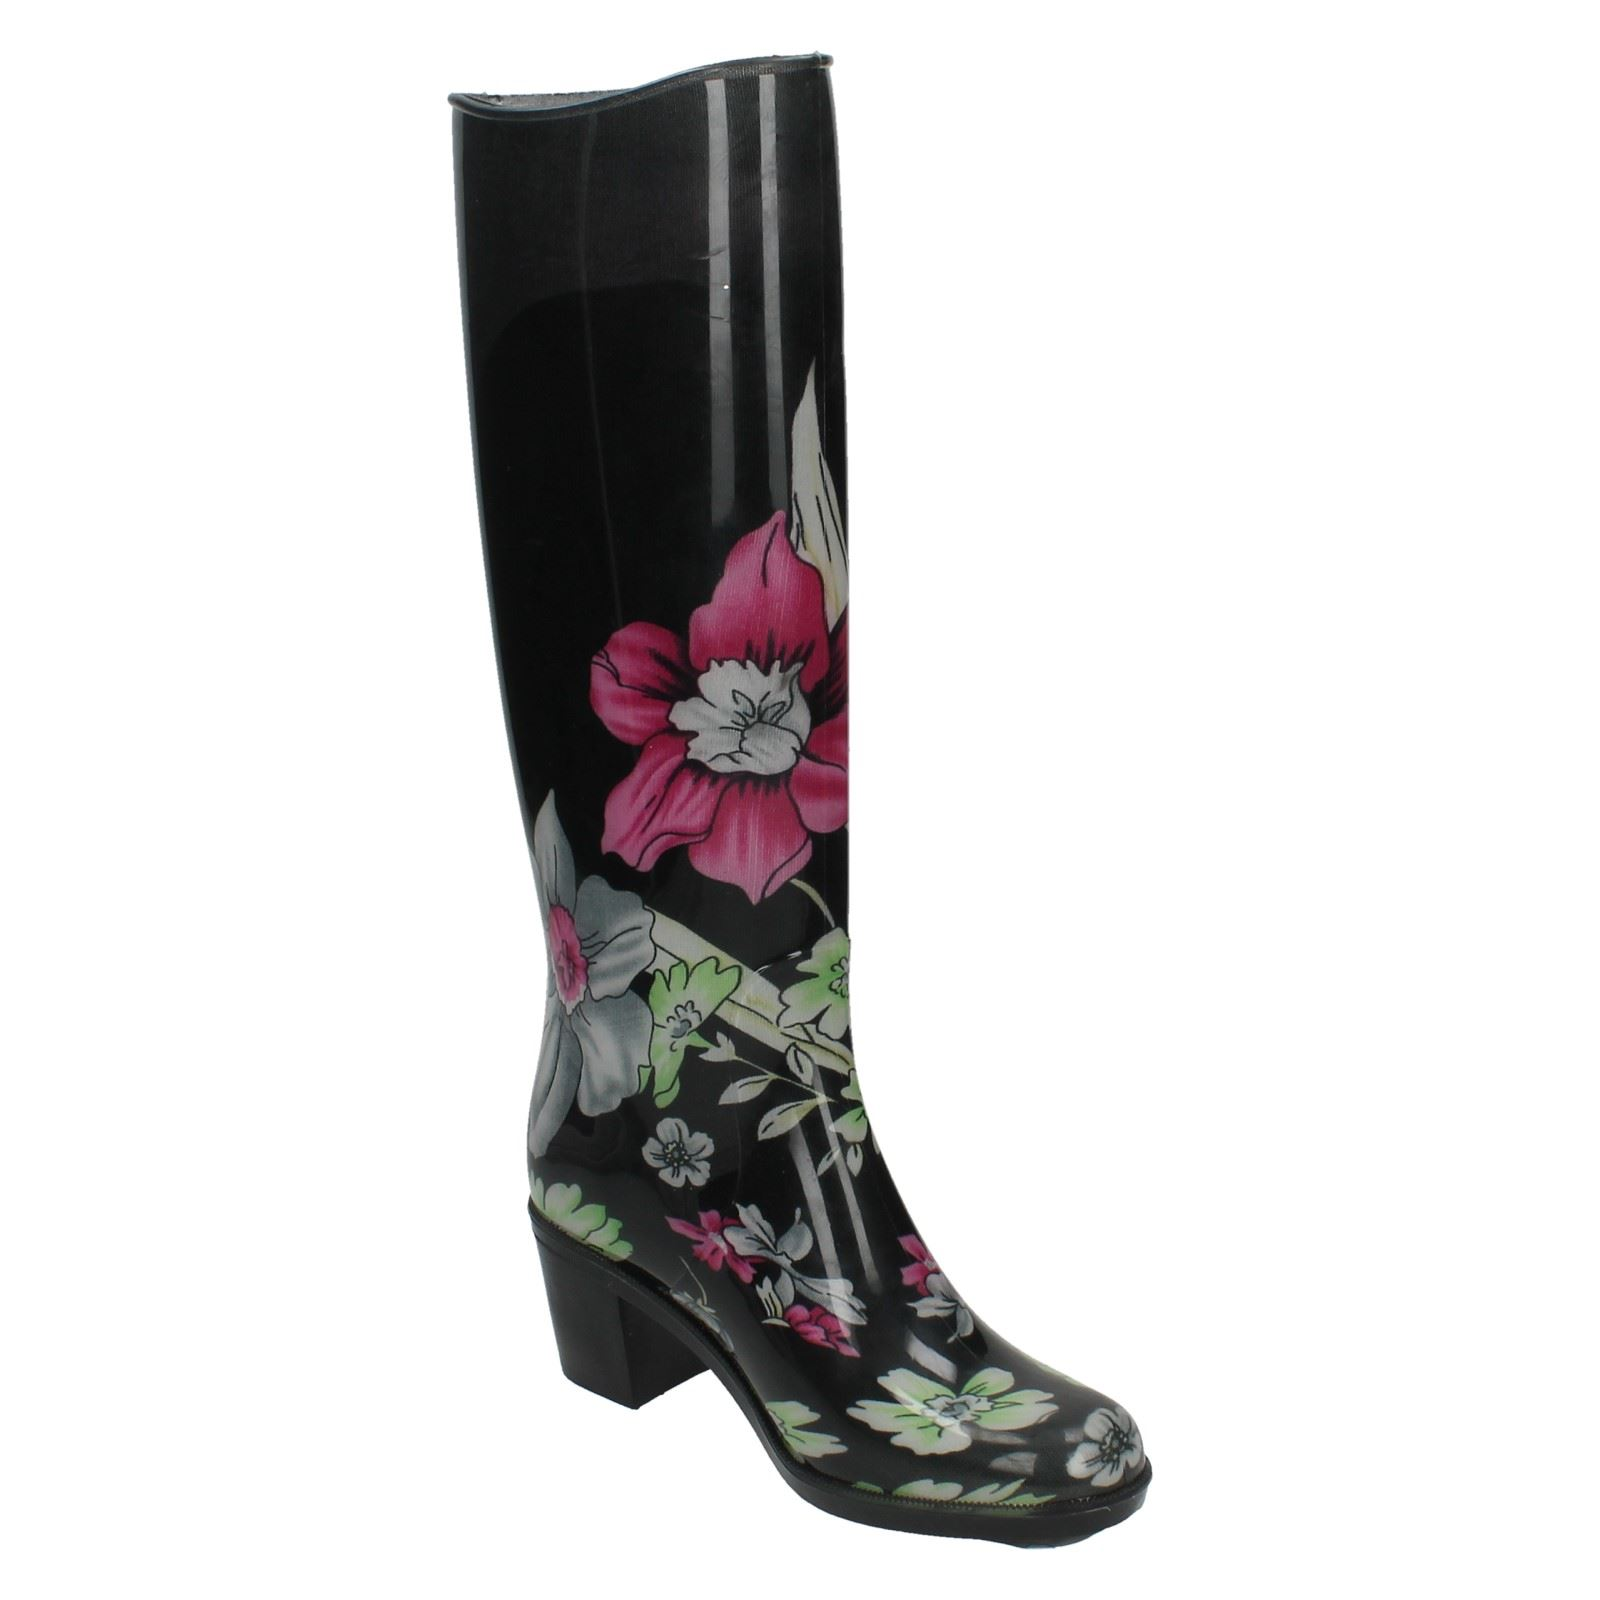 damen spot on mit absatz gummistiefel mit floral design ebay. Black Bedroom Furniture Sets. Home Design Ideas